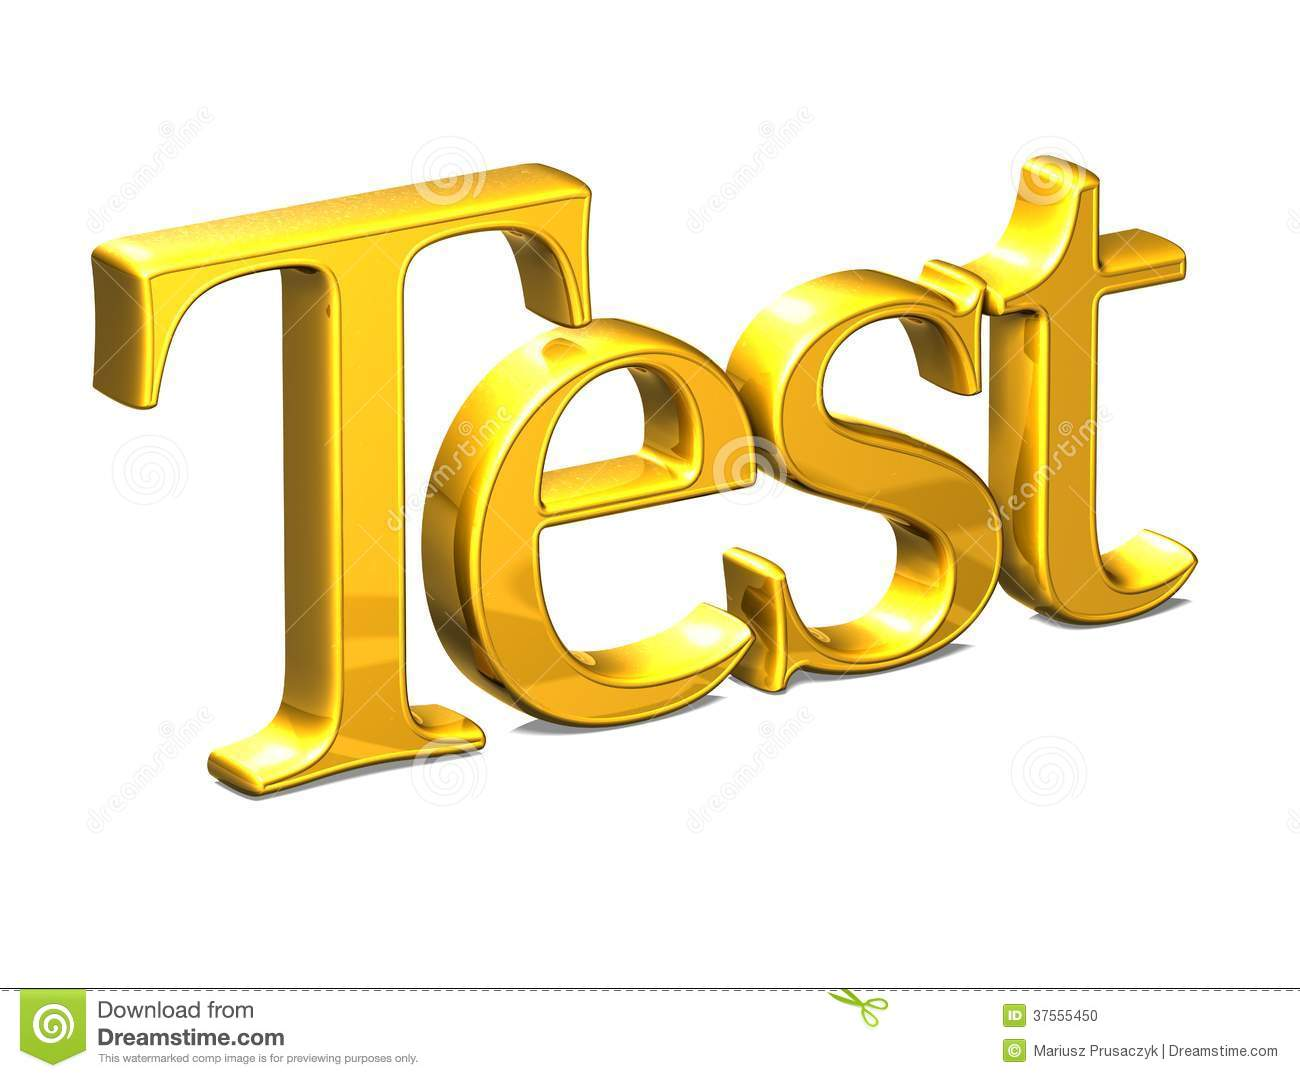 download 3d word test on white background stock illustration illustration of reflection isolated